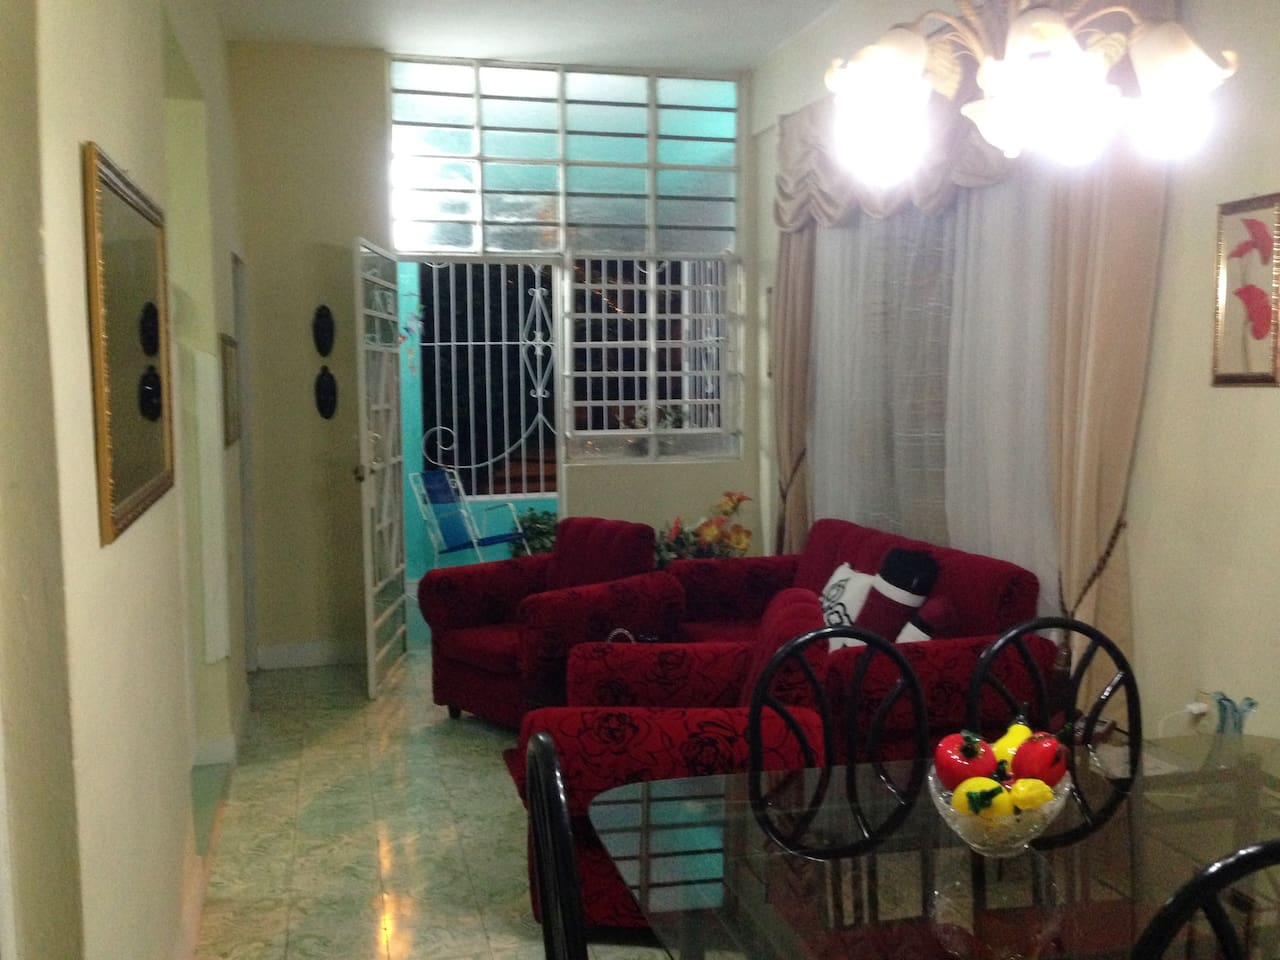 With two private room, ground level apartment in less than 20 min for all tourism attraction you will be able to walk every where on the fantastic Havana, Capital of Cuba.  One of the most safest neighborhoods in town due it is just 5 walking  min from Jose Marti Mausoleum.